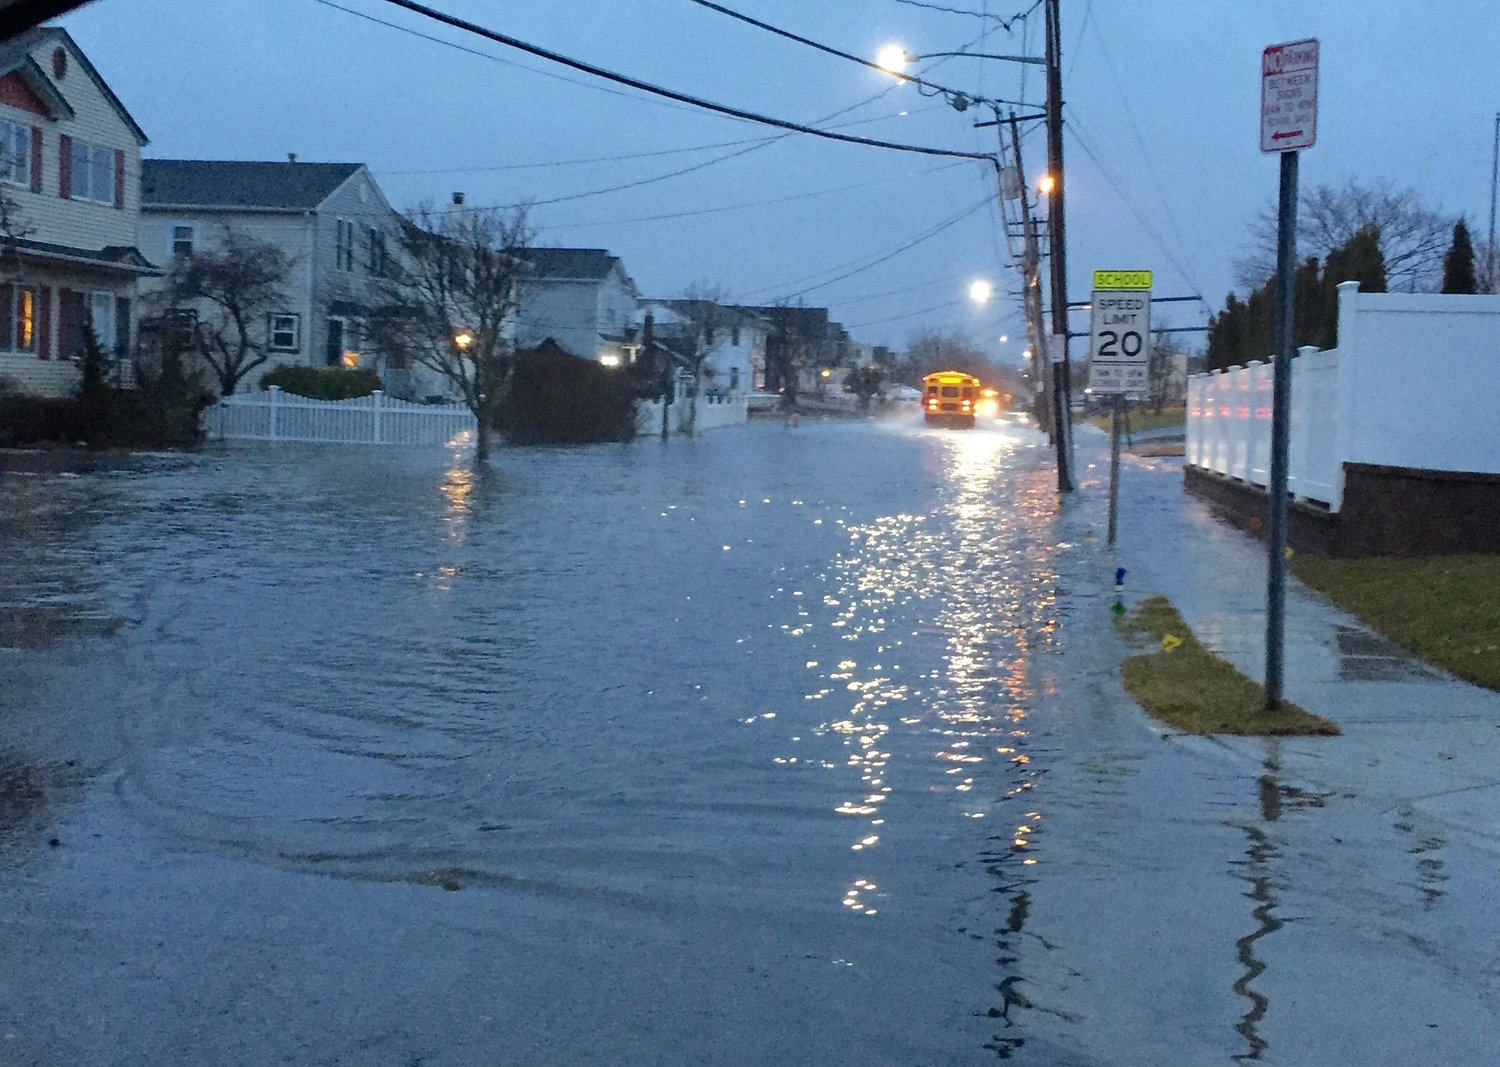 After Hurricane Sandy, Nassau County Legislator Steve Rhoads took this shot of the severe flooding on Shore Road. Water flowed onto the sidewalks and front lawns.